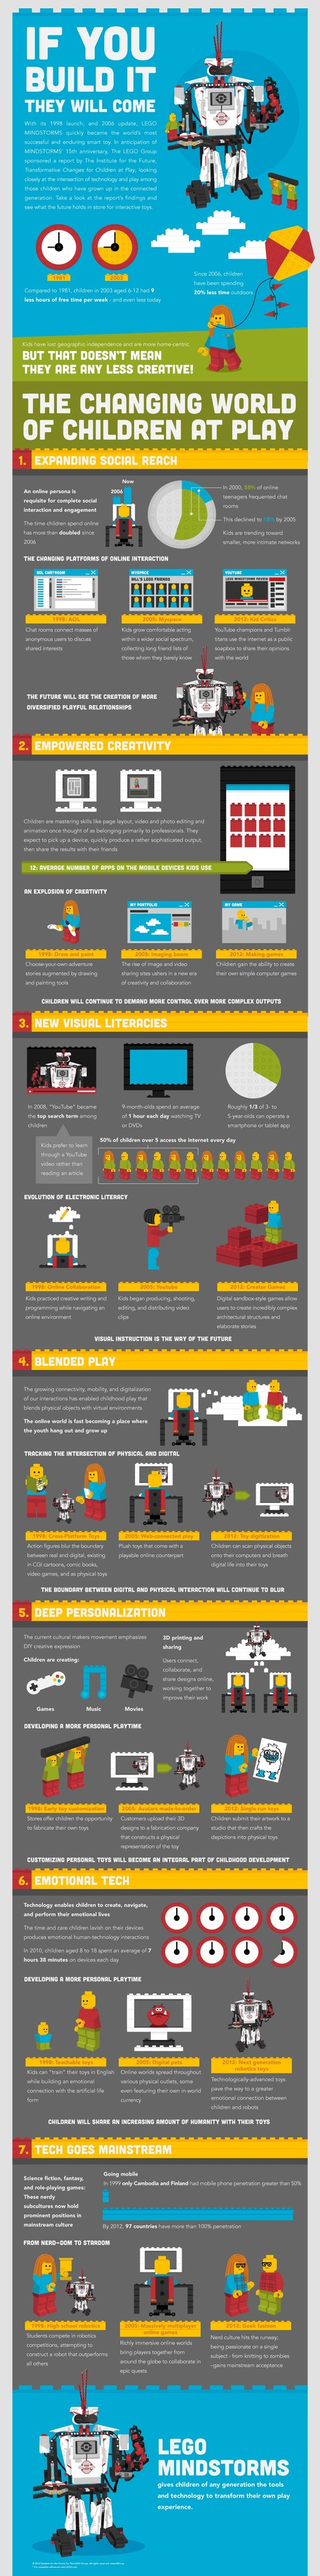 Let Children's Play (with Technology) Be Their Work in Education [Infographic] | ICT in Education Thessaloniki | Scoop.it